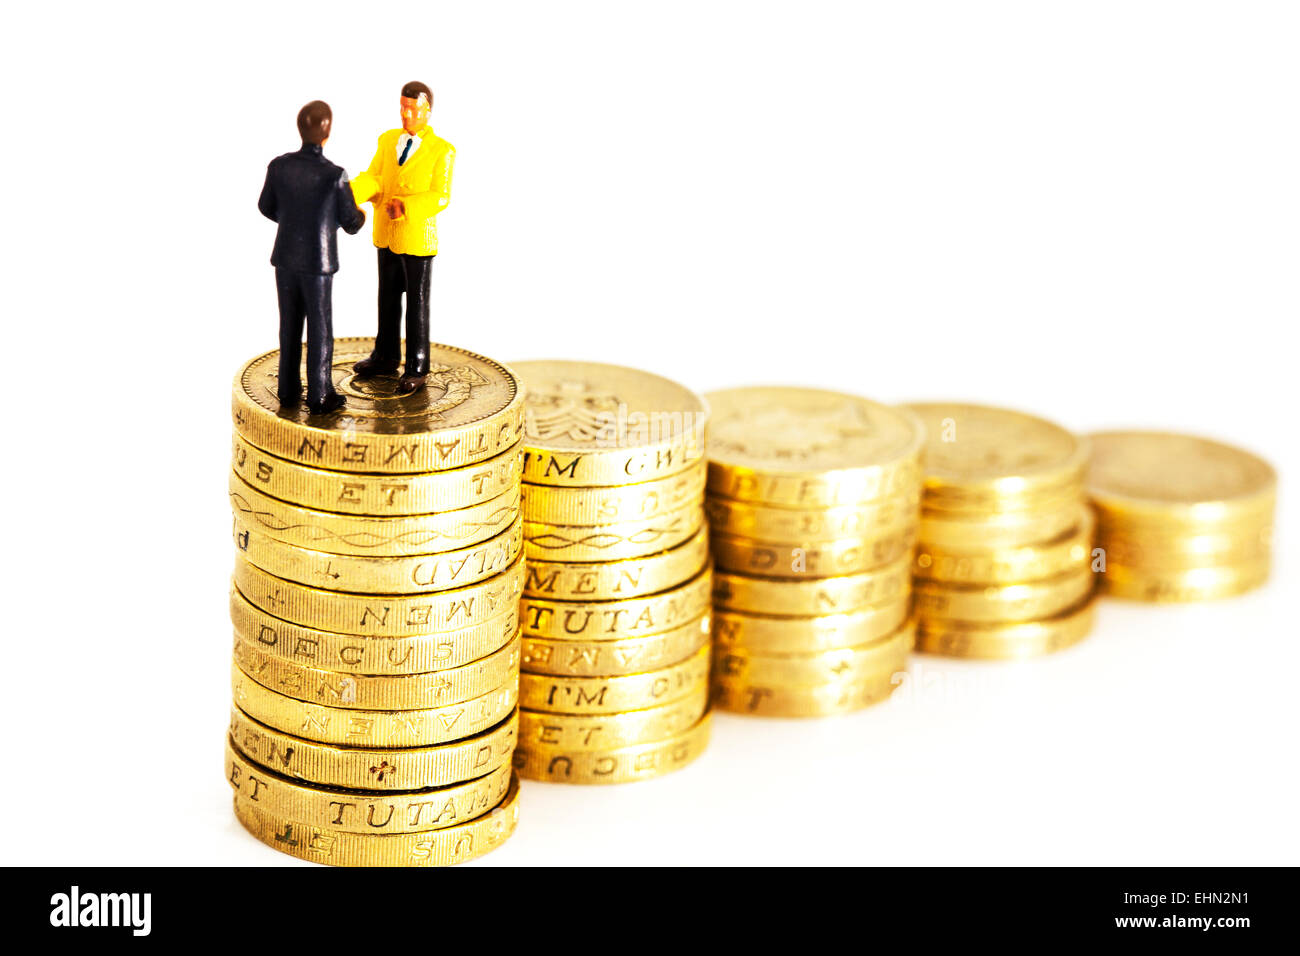 finance financial finances business businessman businessmen cash fat cats pound pounds coins deal hand shake handshake - Stock Image